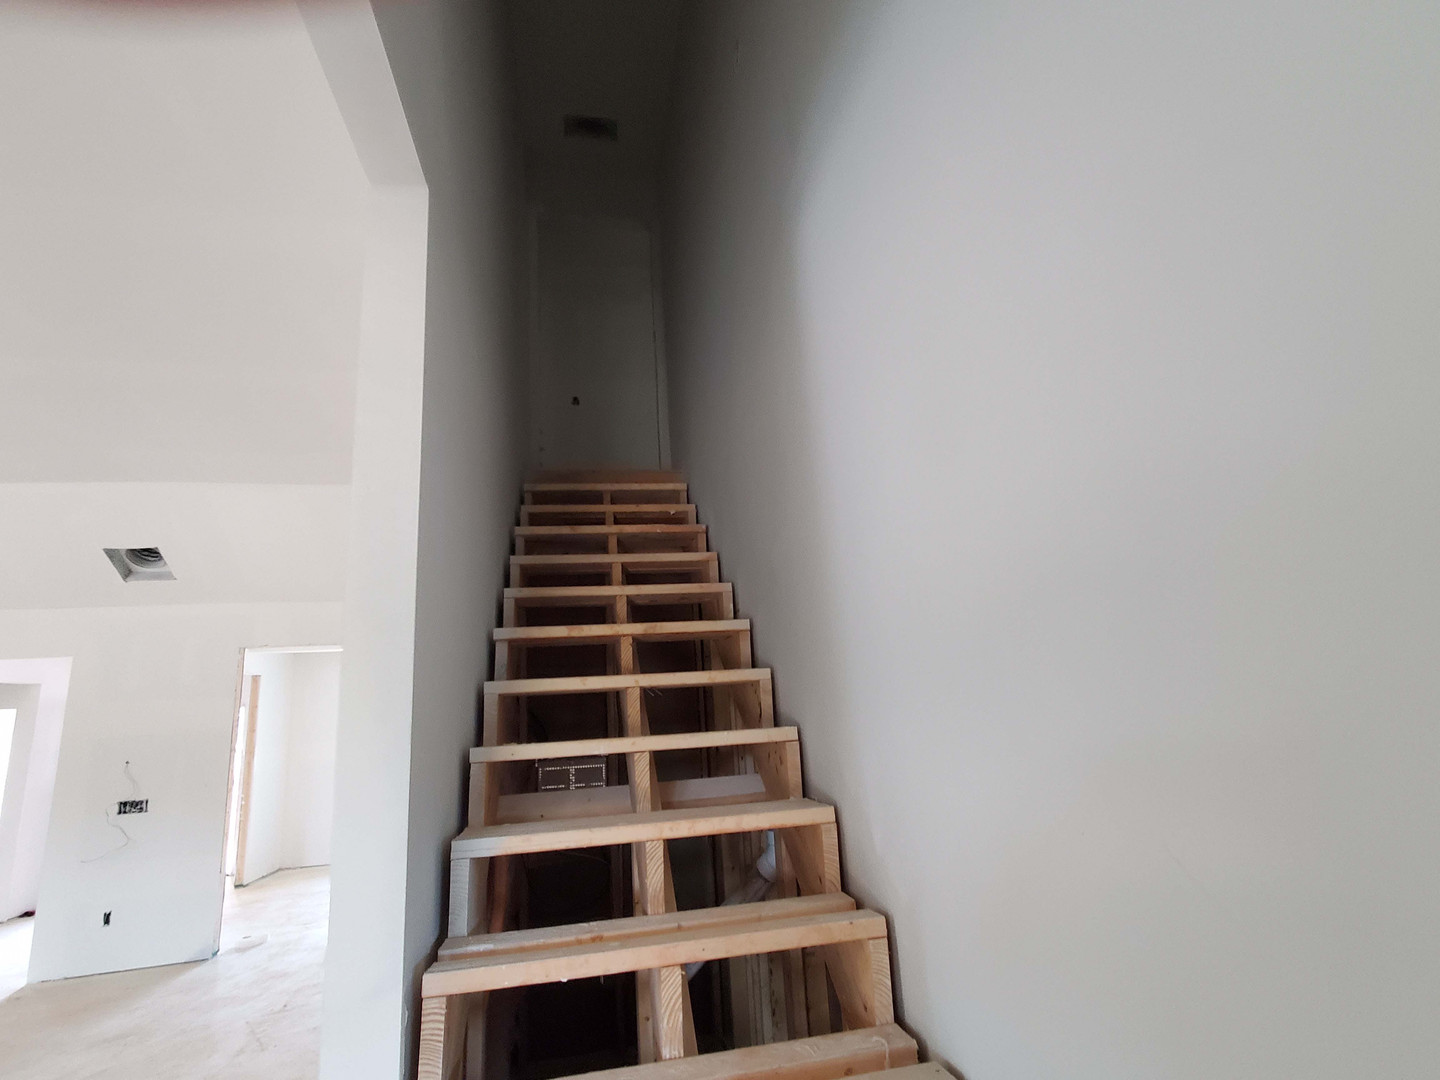 Stairs up to bedroom/bath over garage